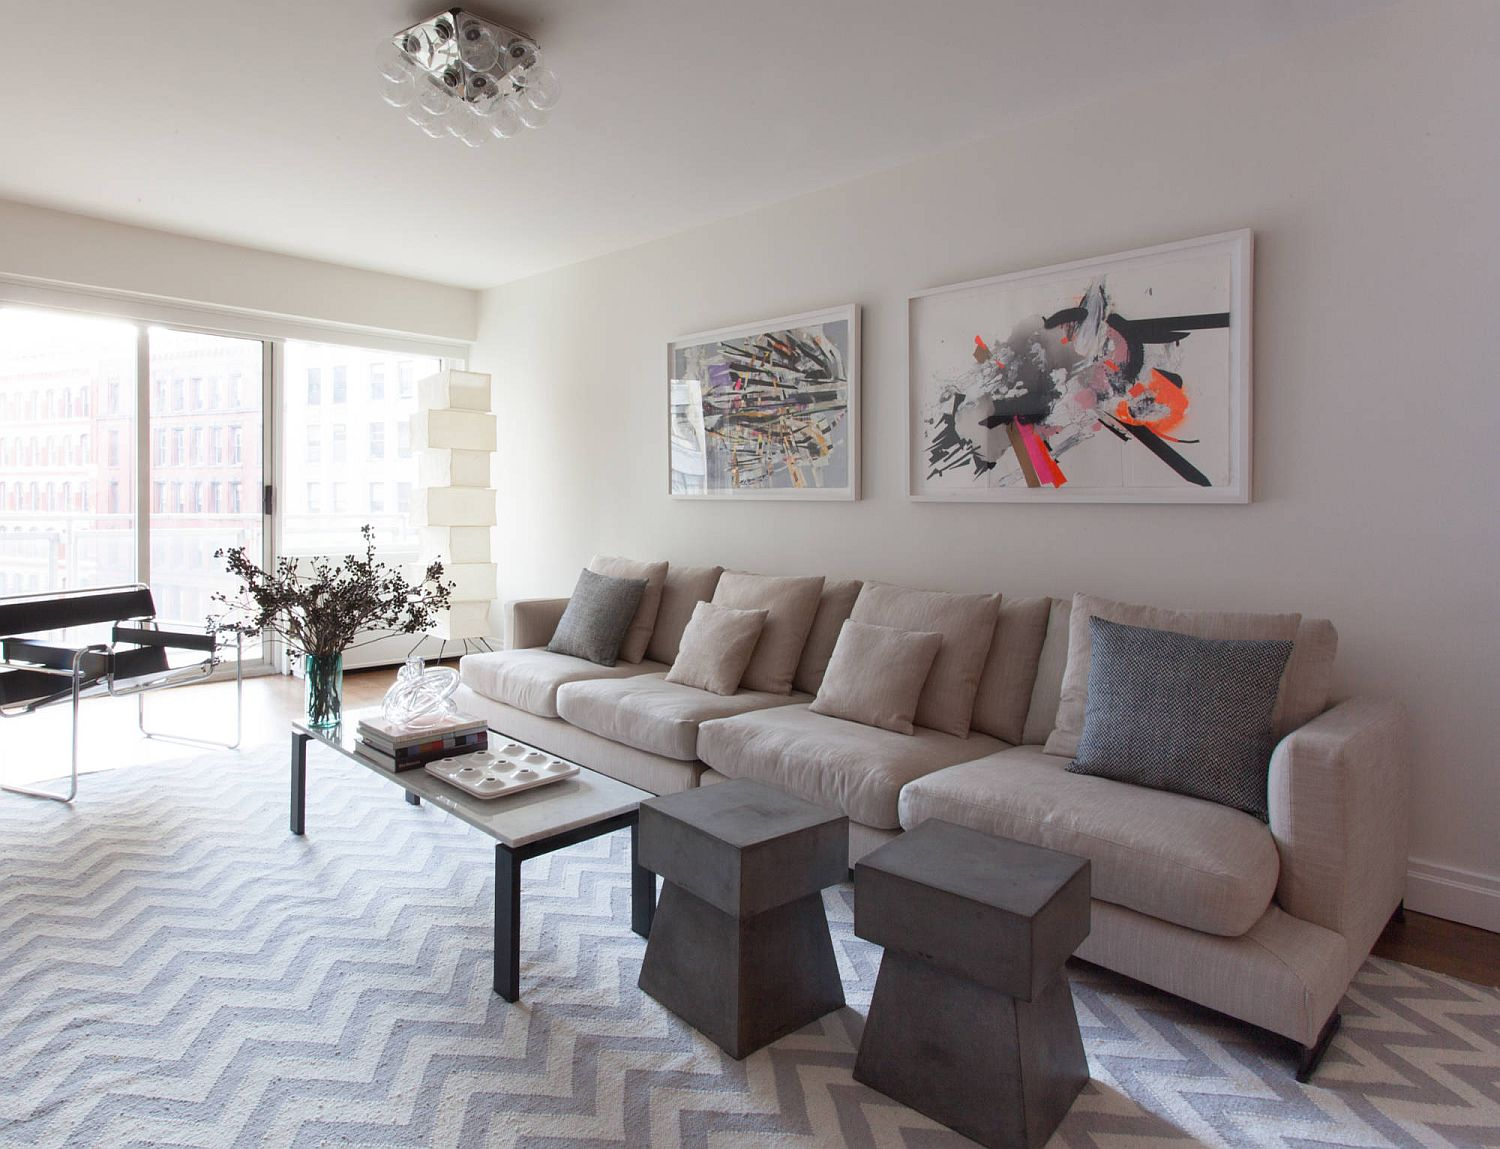 Modern minimal living room in white with chevron pattern flooring and wall art with a dash of color